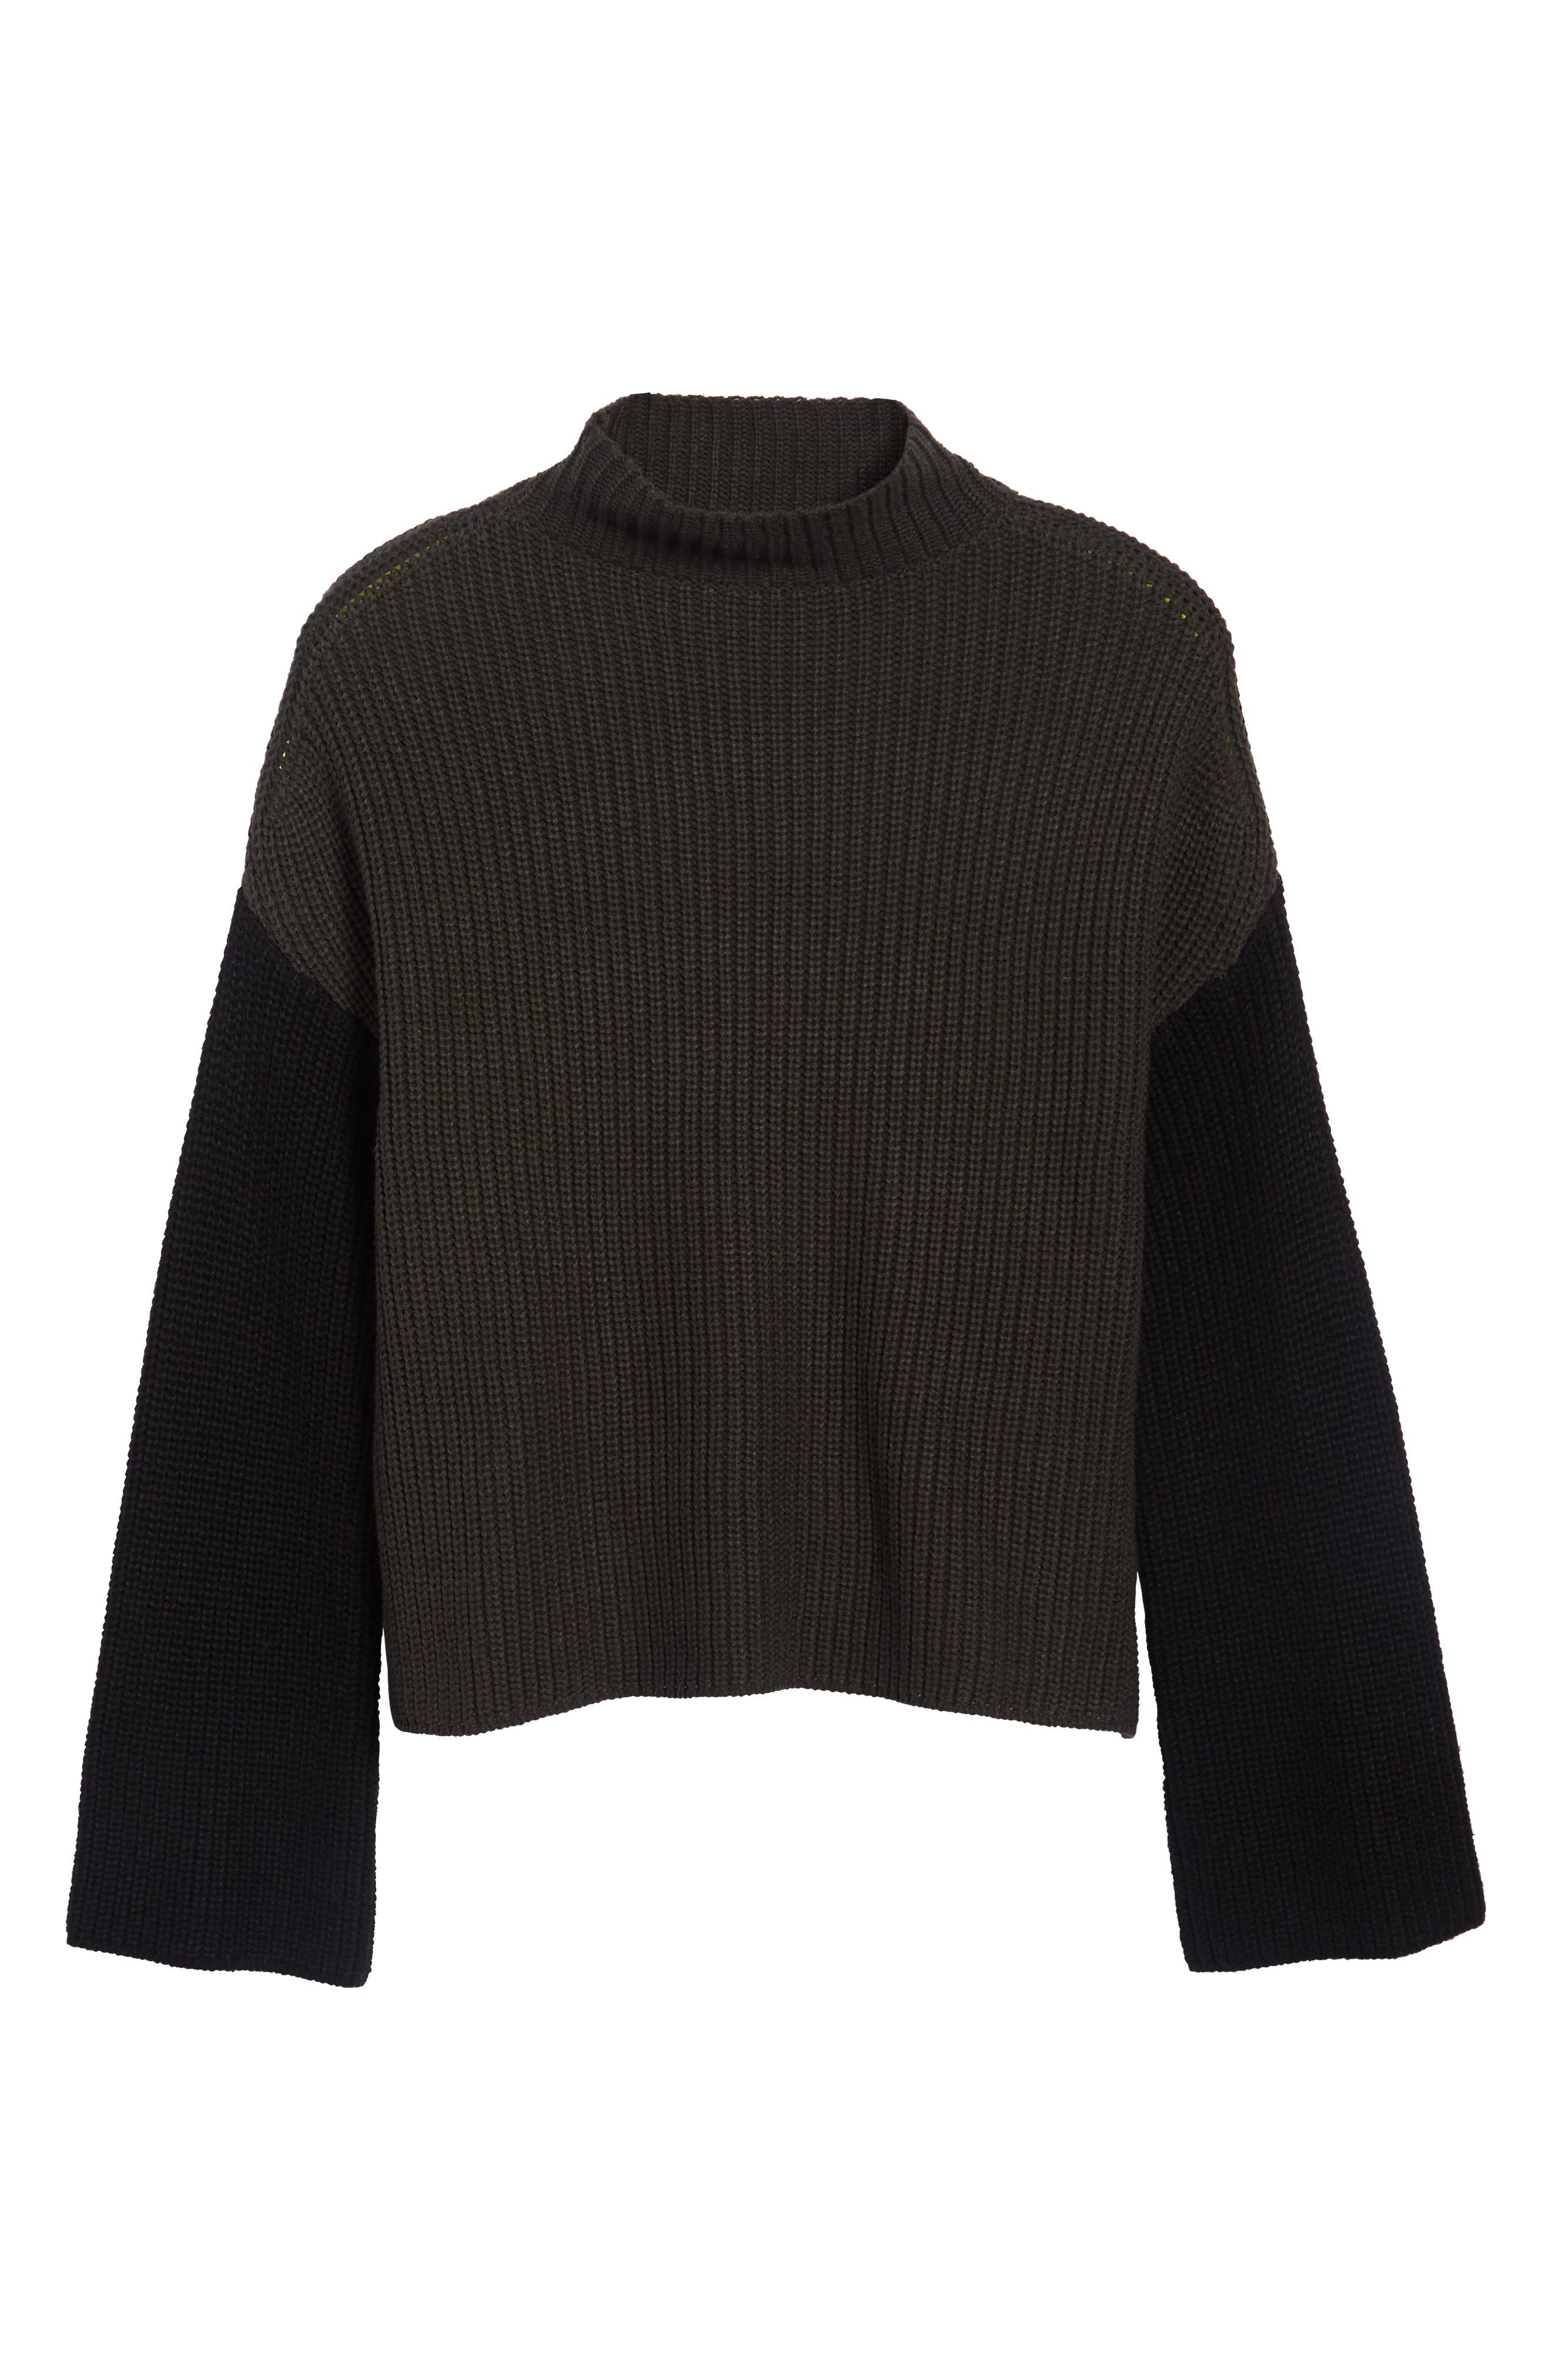 Colorblock Mock Turtleneck,                             Alternate thumbnail 6, color,                             Grey/ Black/ Yellow